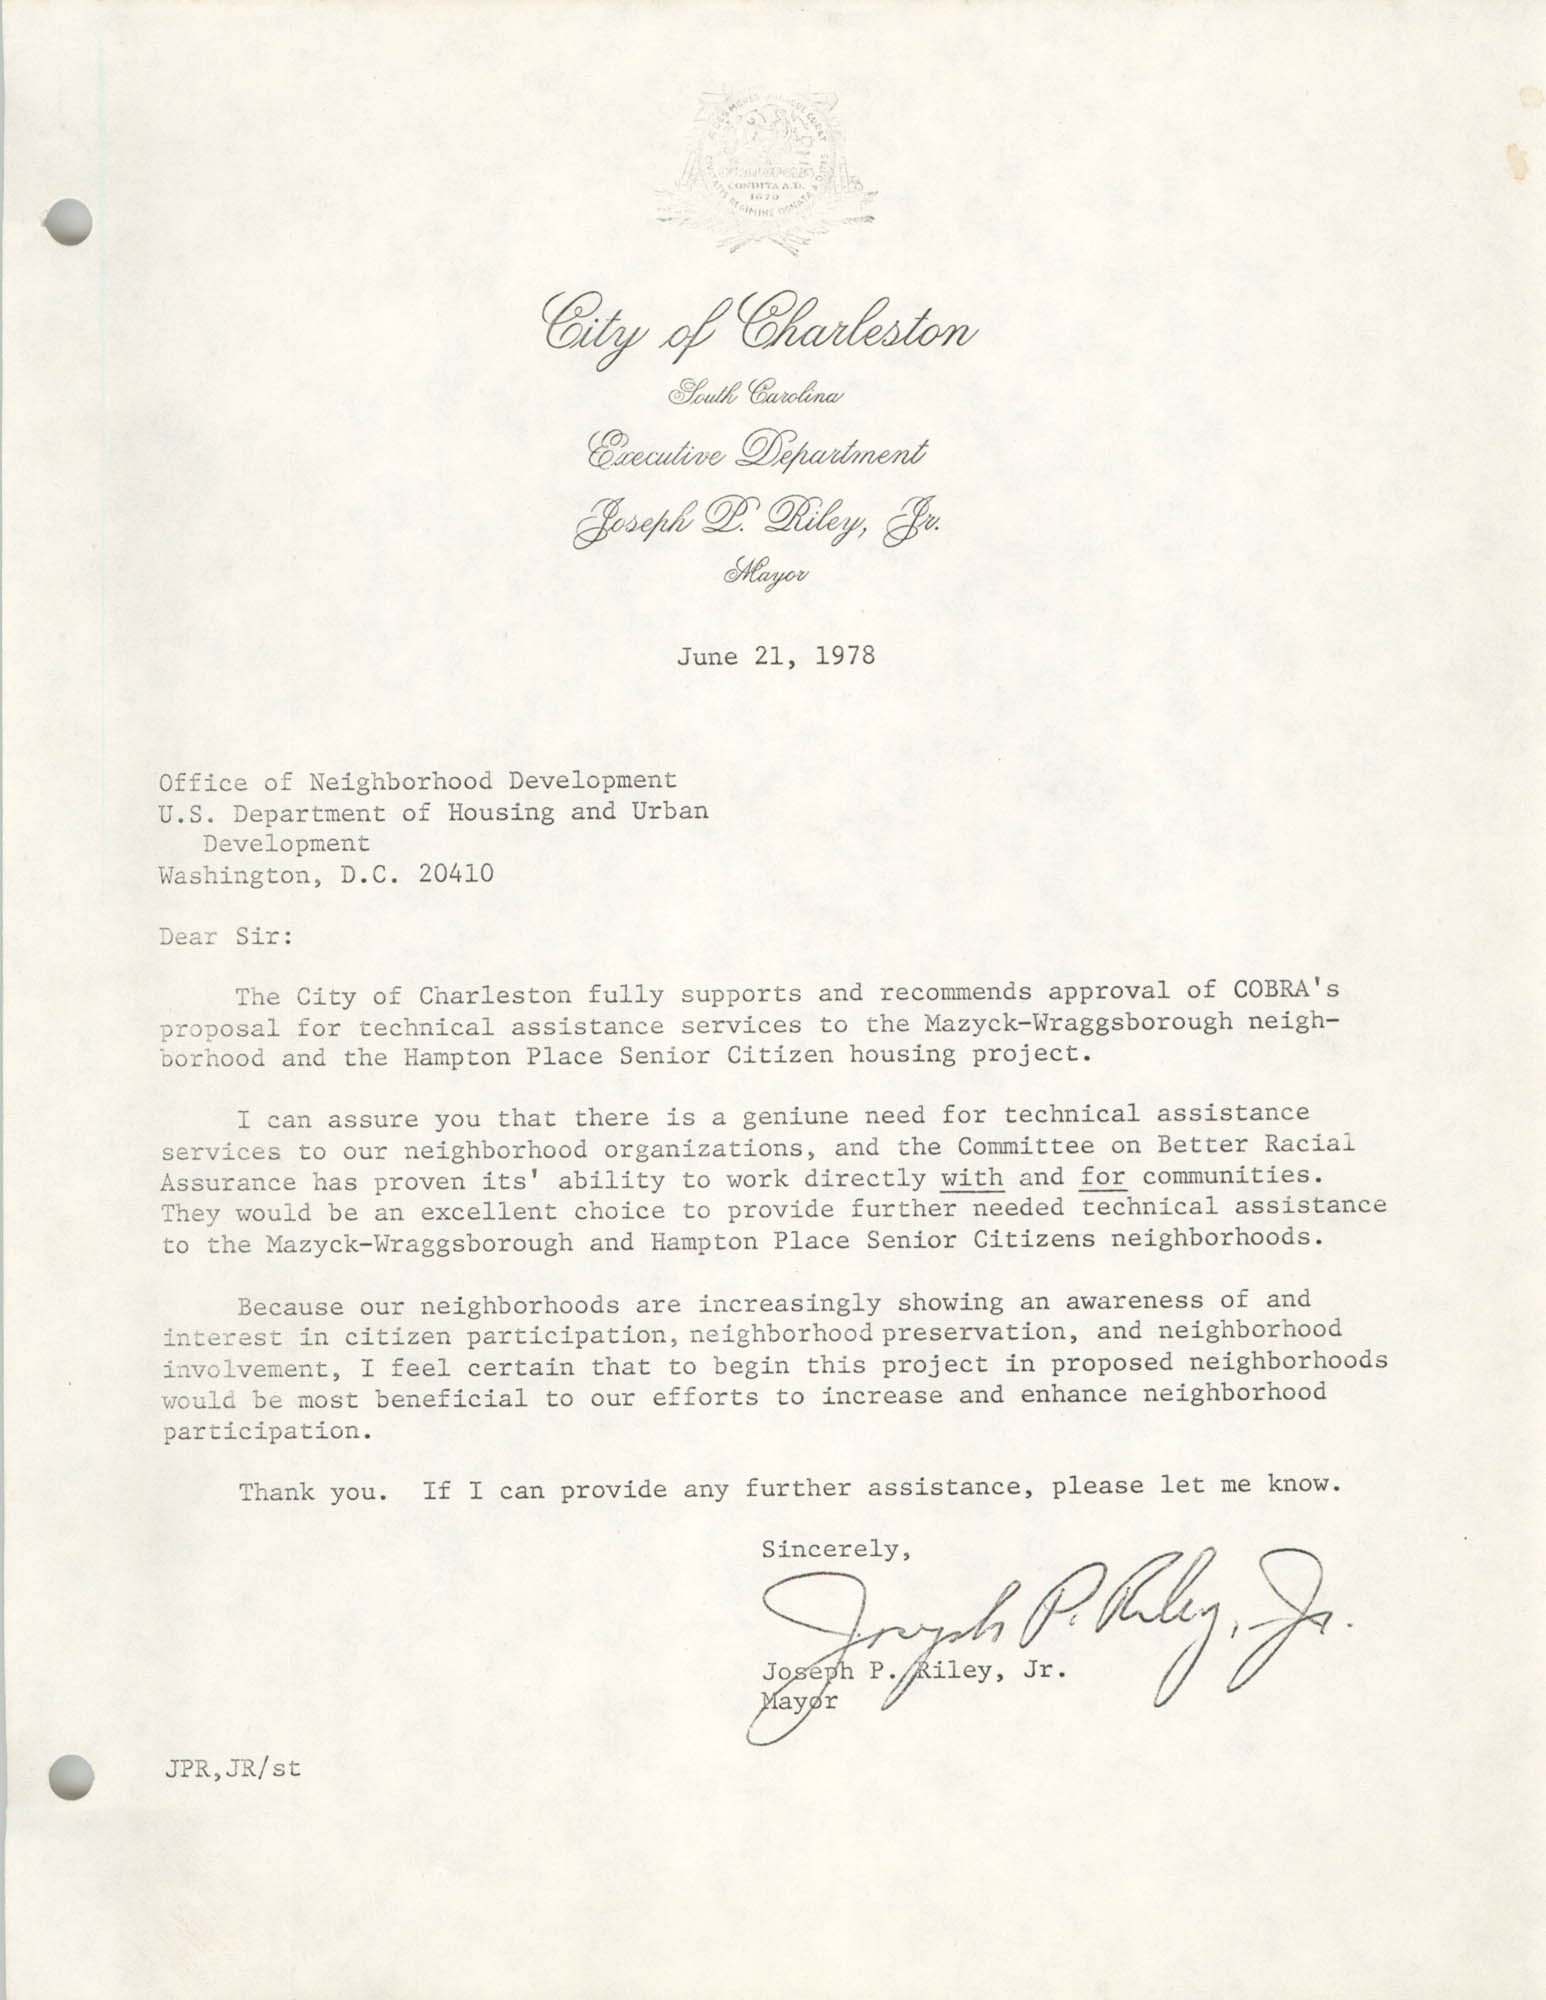 Letter from Joseph P. Riley, Jr. to Office of Neighborhood Development, June 21, 1978